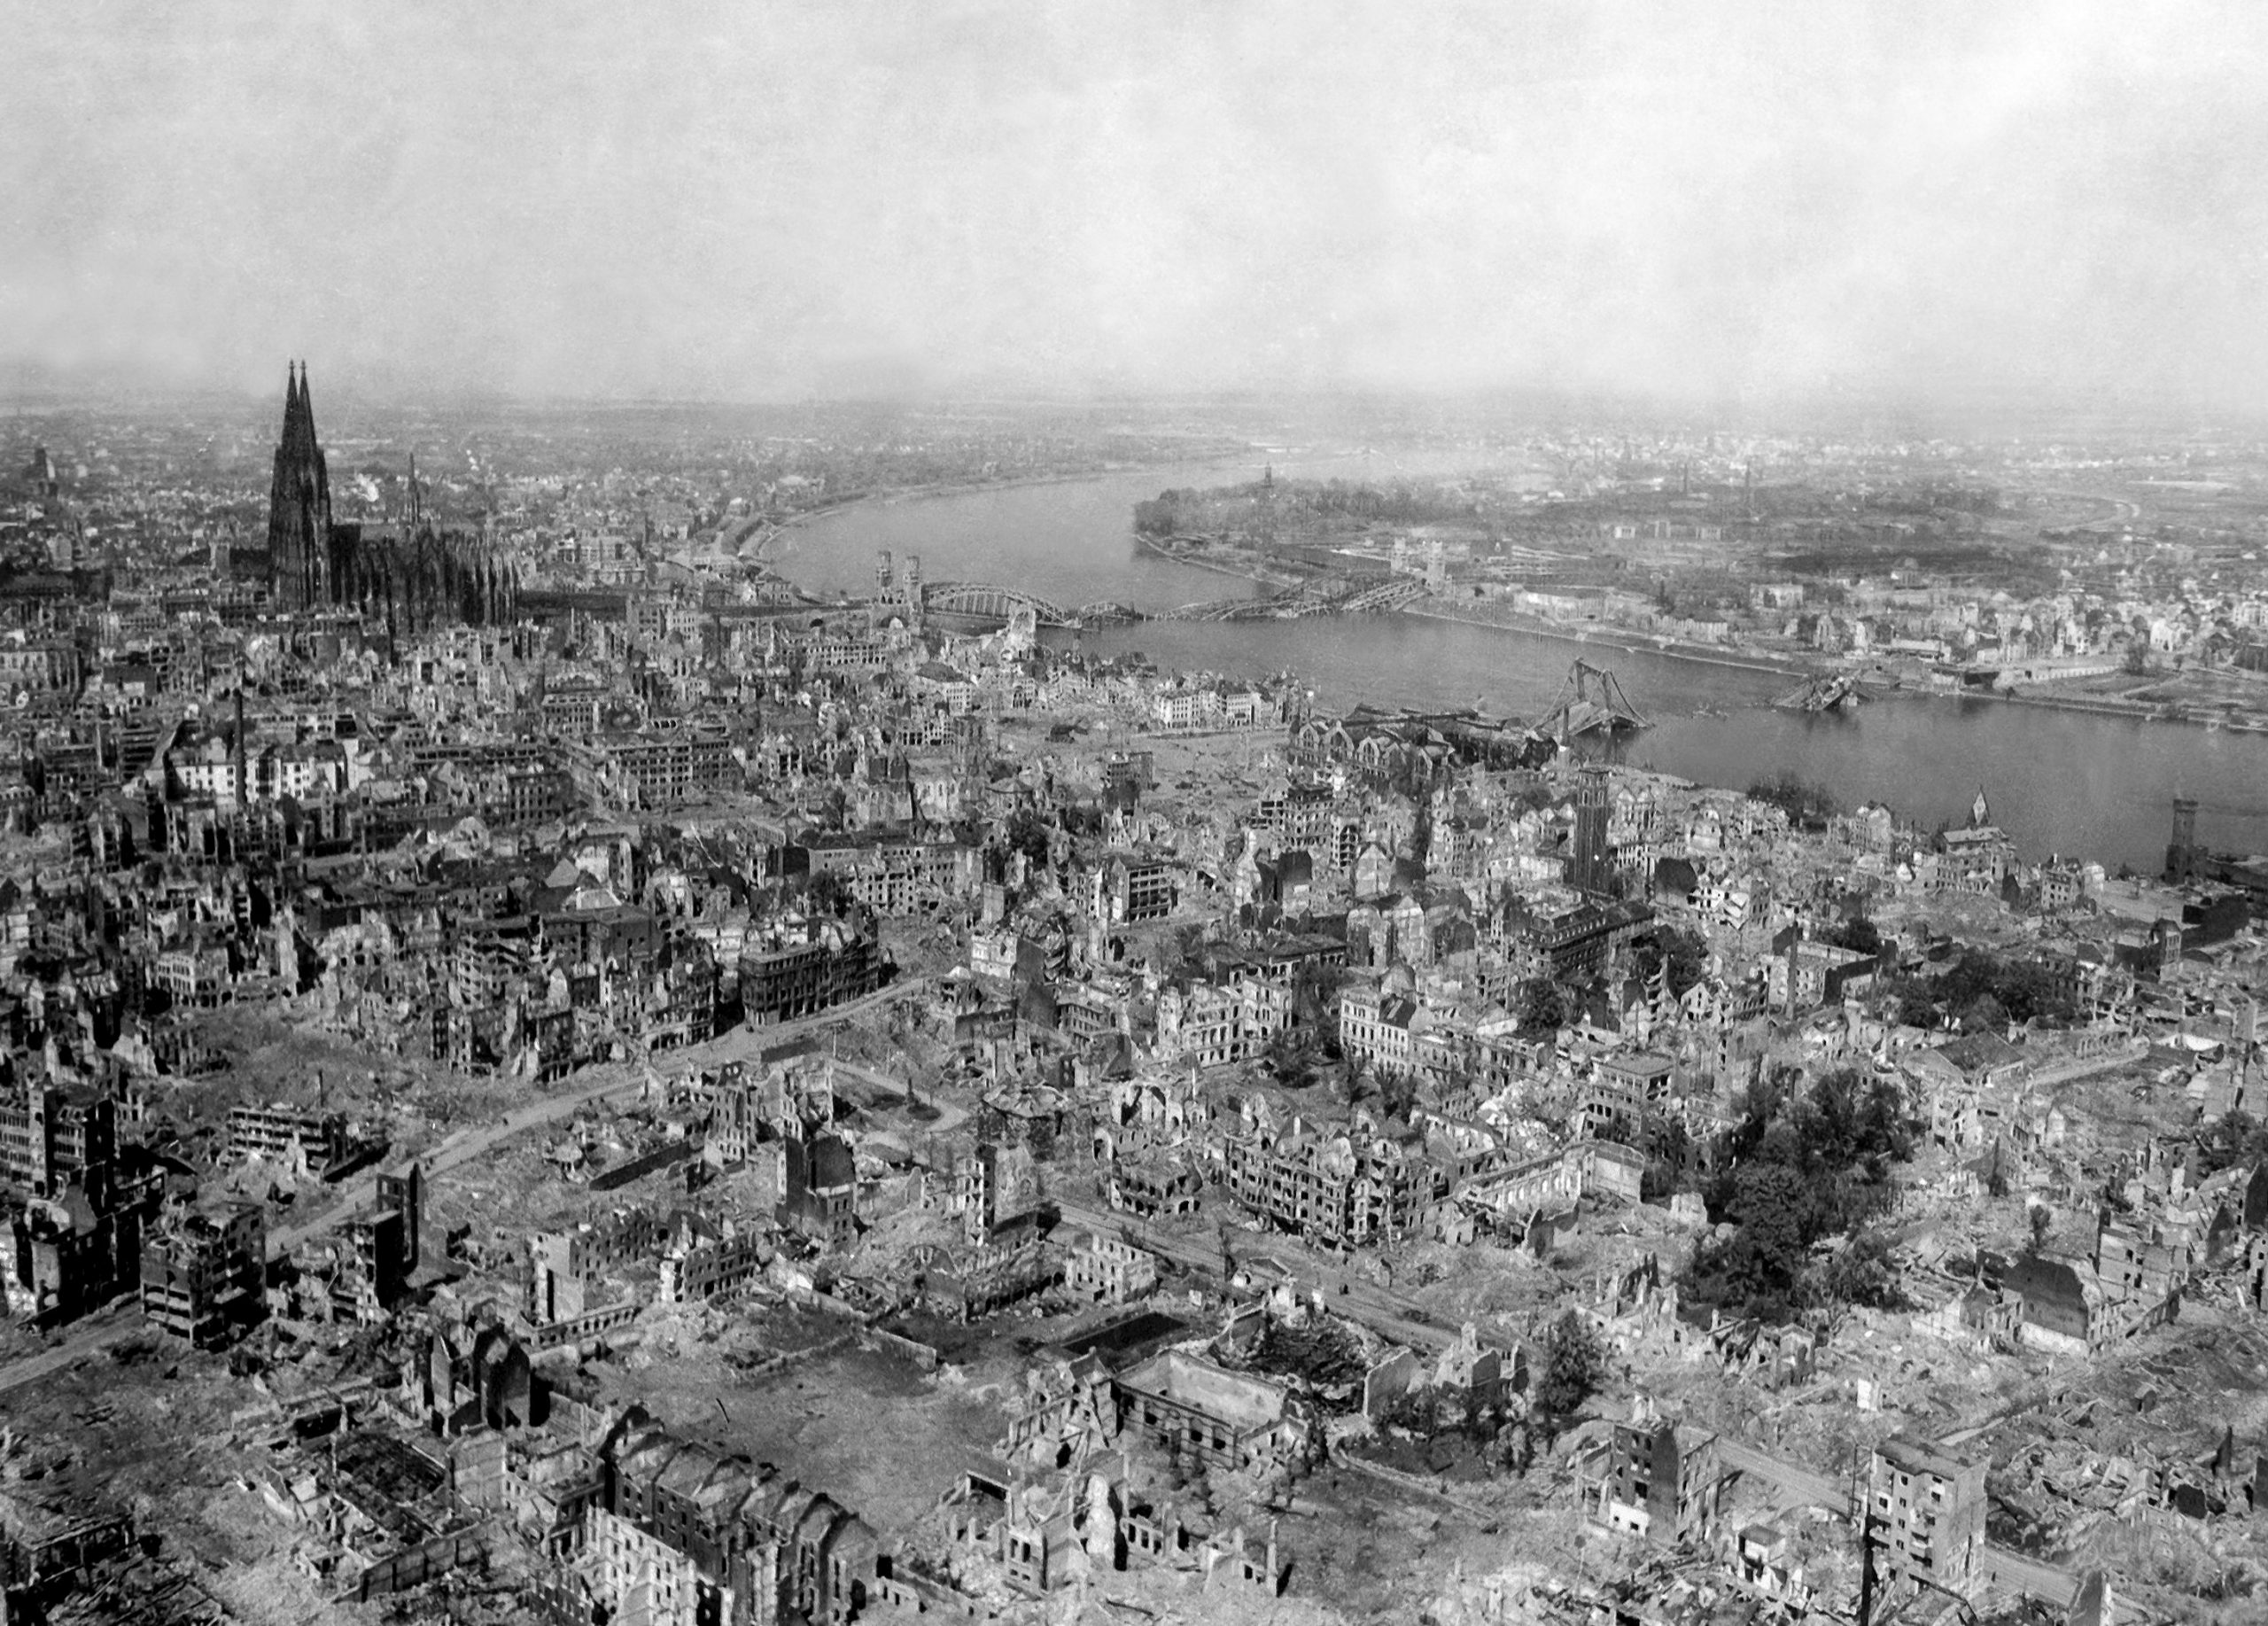 Cologne, Germany, after air raids